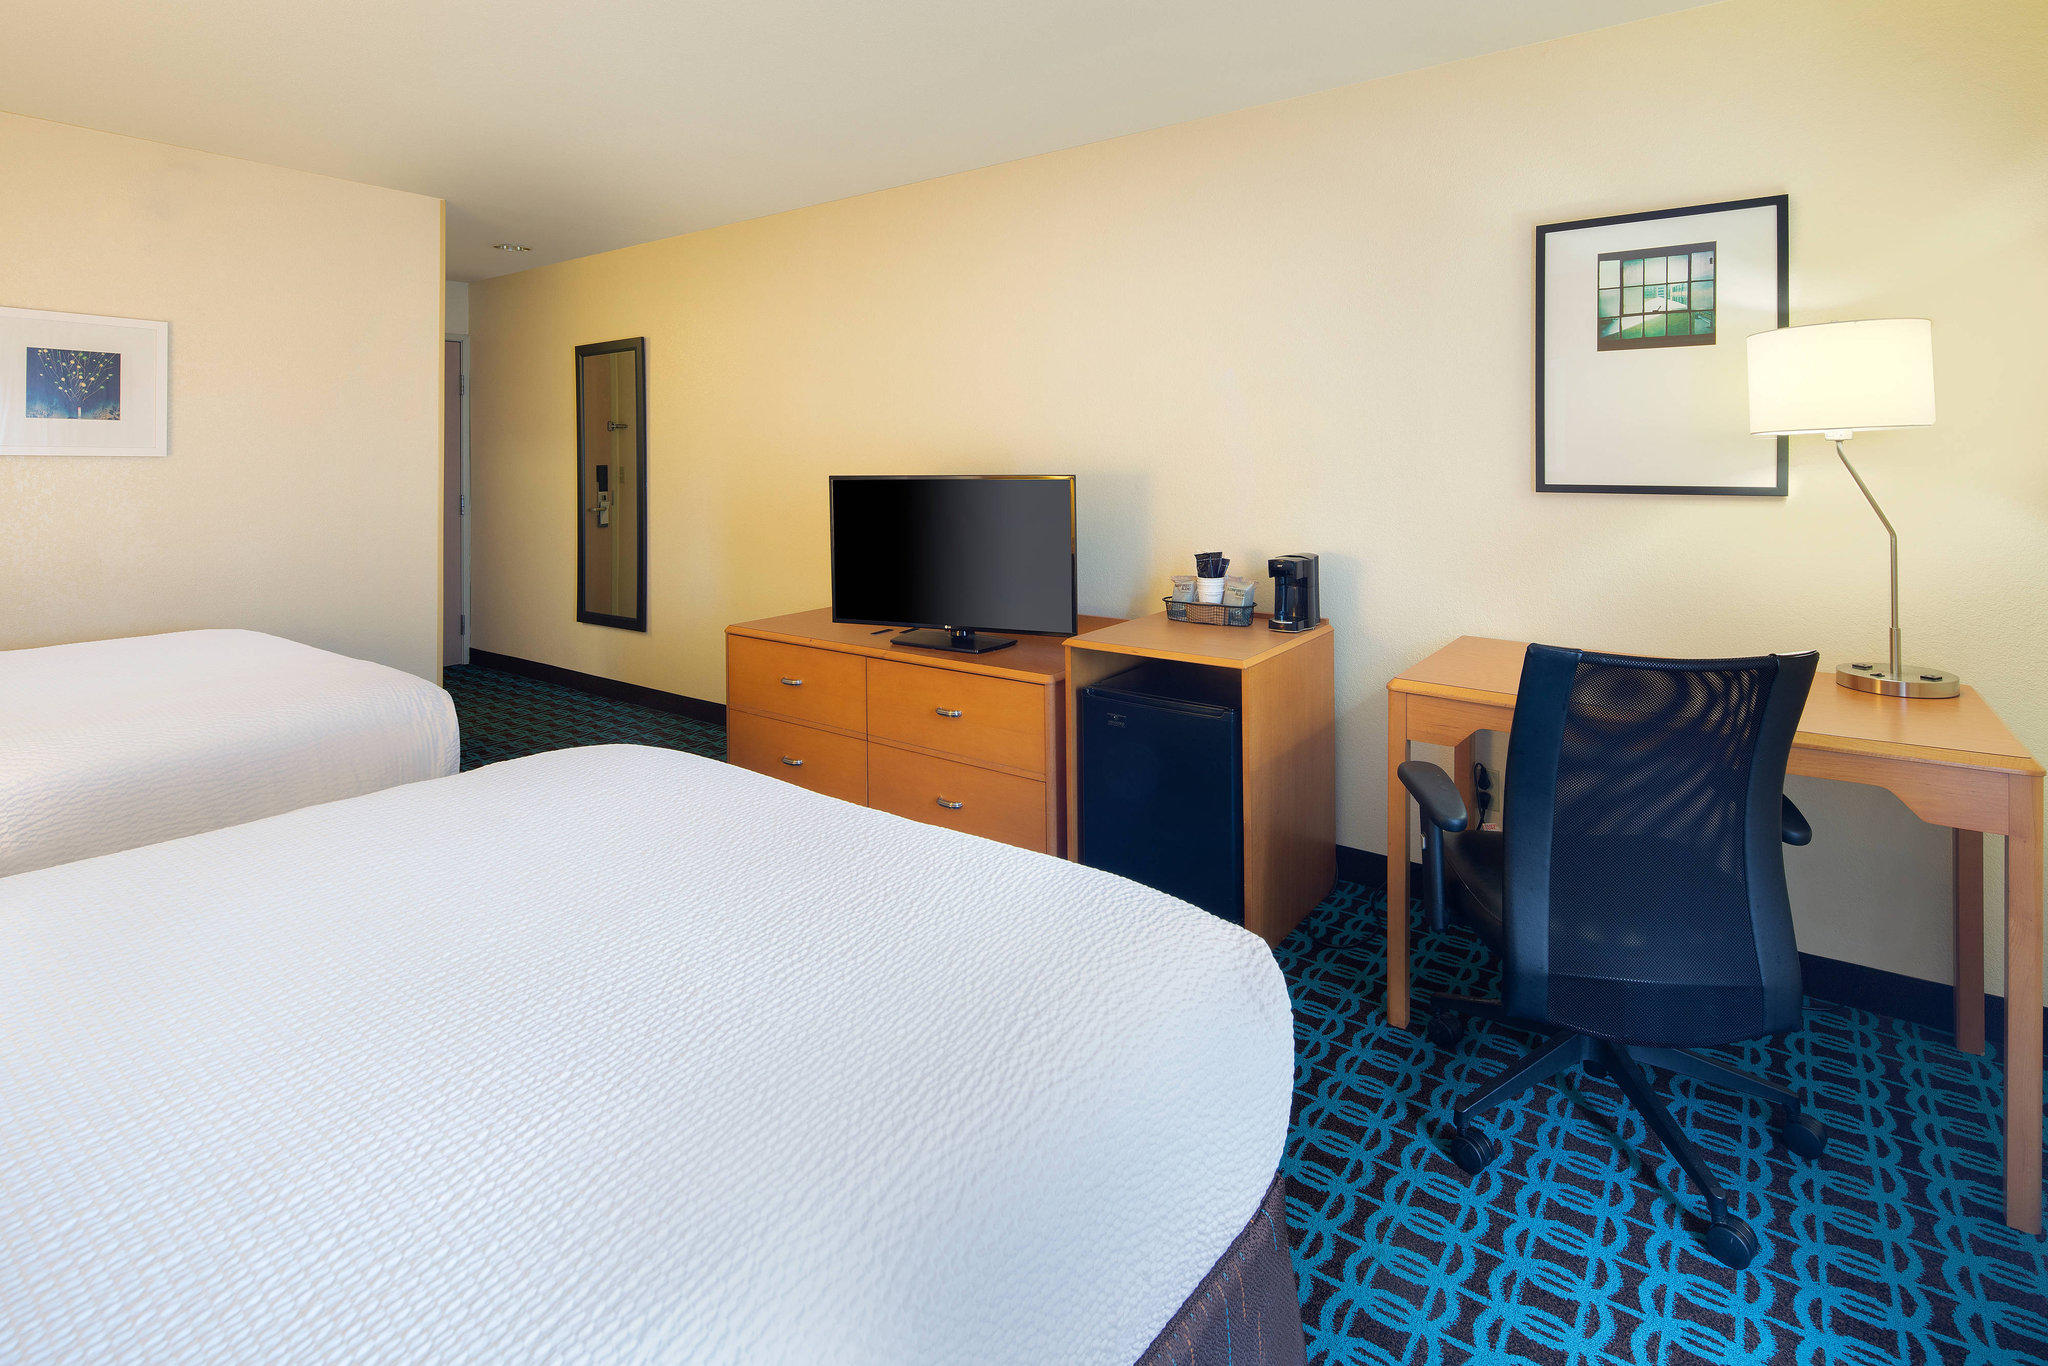 Fairfield Inn & Suites by Marriott Indianapolis Airport